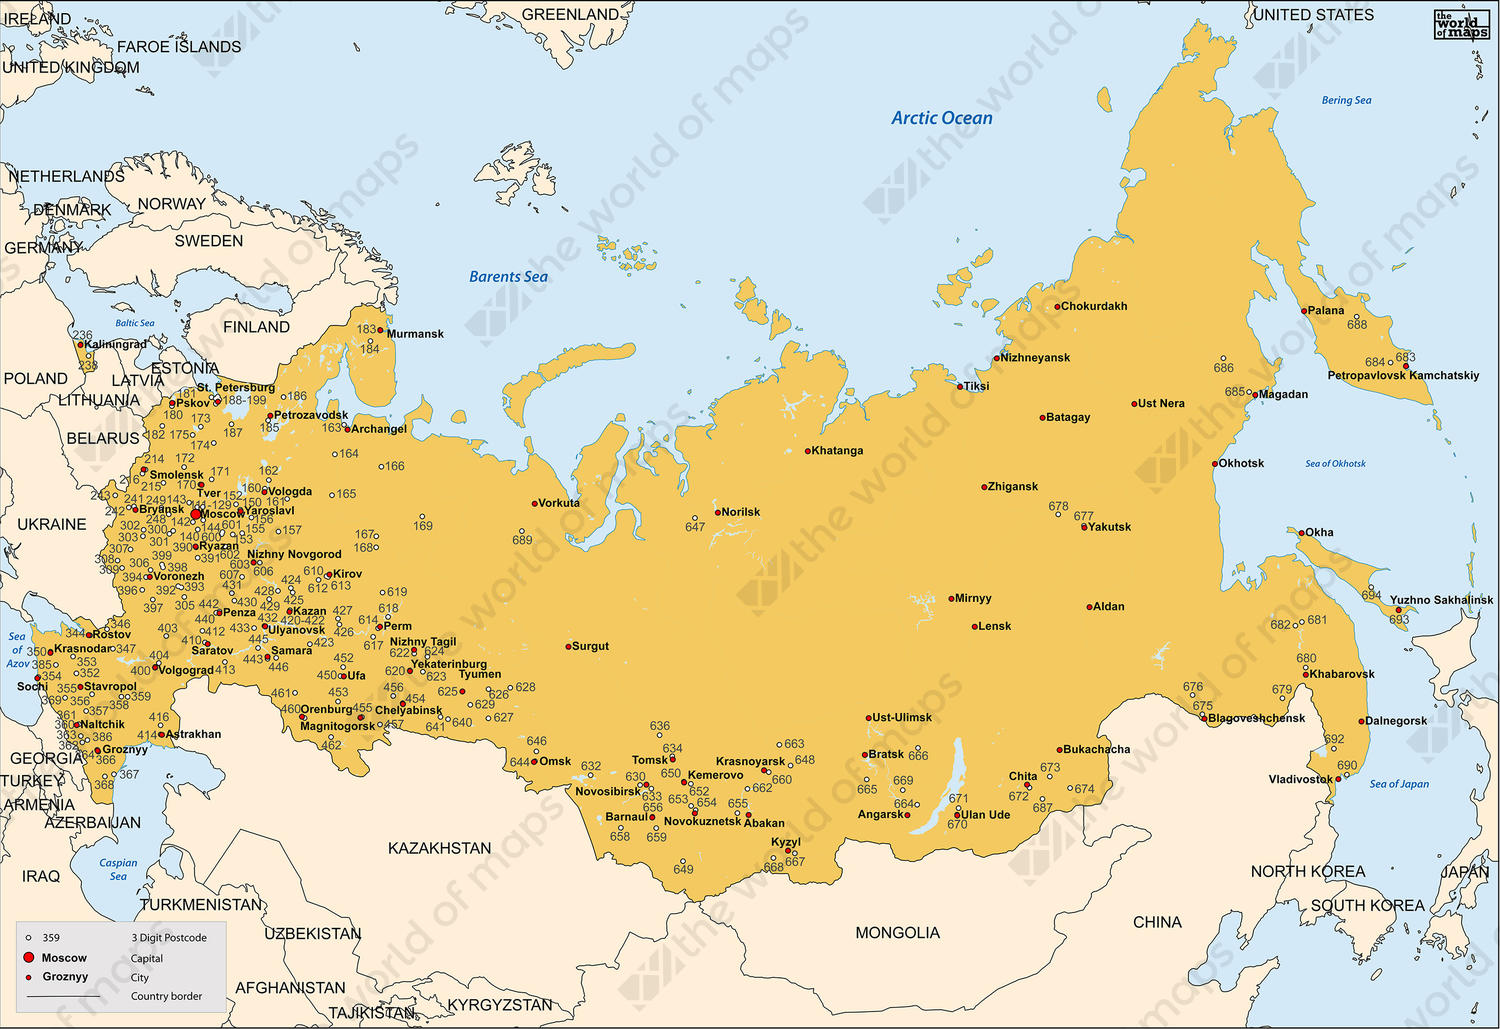 Digital Postcode Map Russia 3digit 258 The World of Mapscom